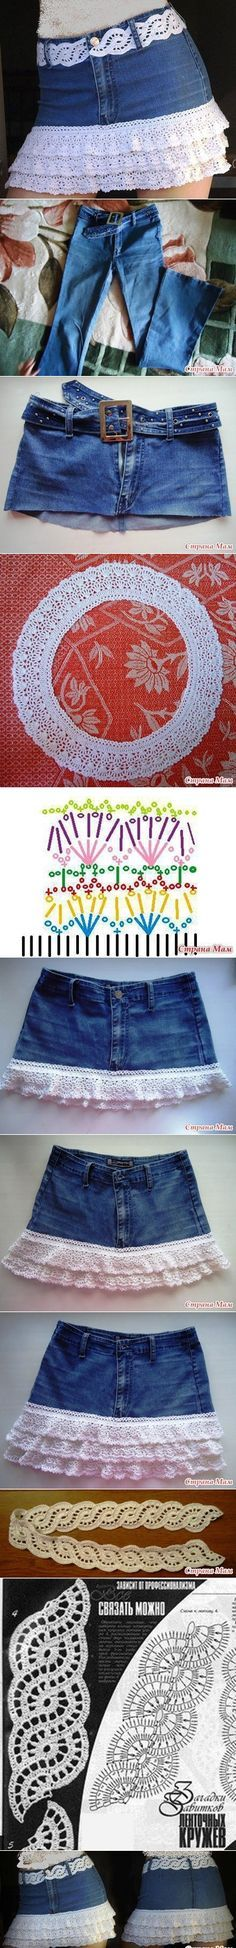 DIY Crochet layered Skirt from Old Jean | www.FabArtDIY.com LIKE Us on Facebook ==> https://www.facebook.com/FabArtDIY